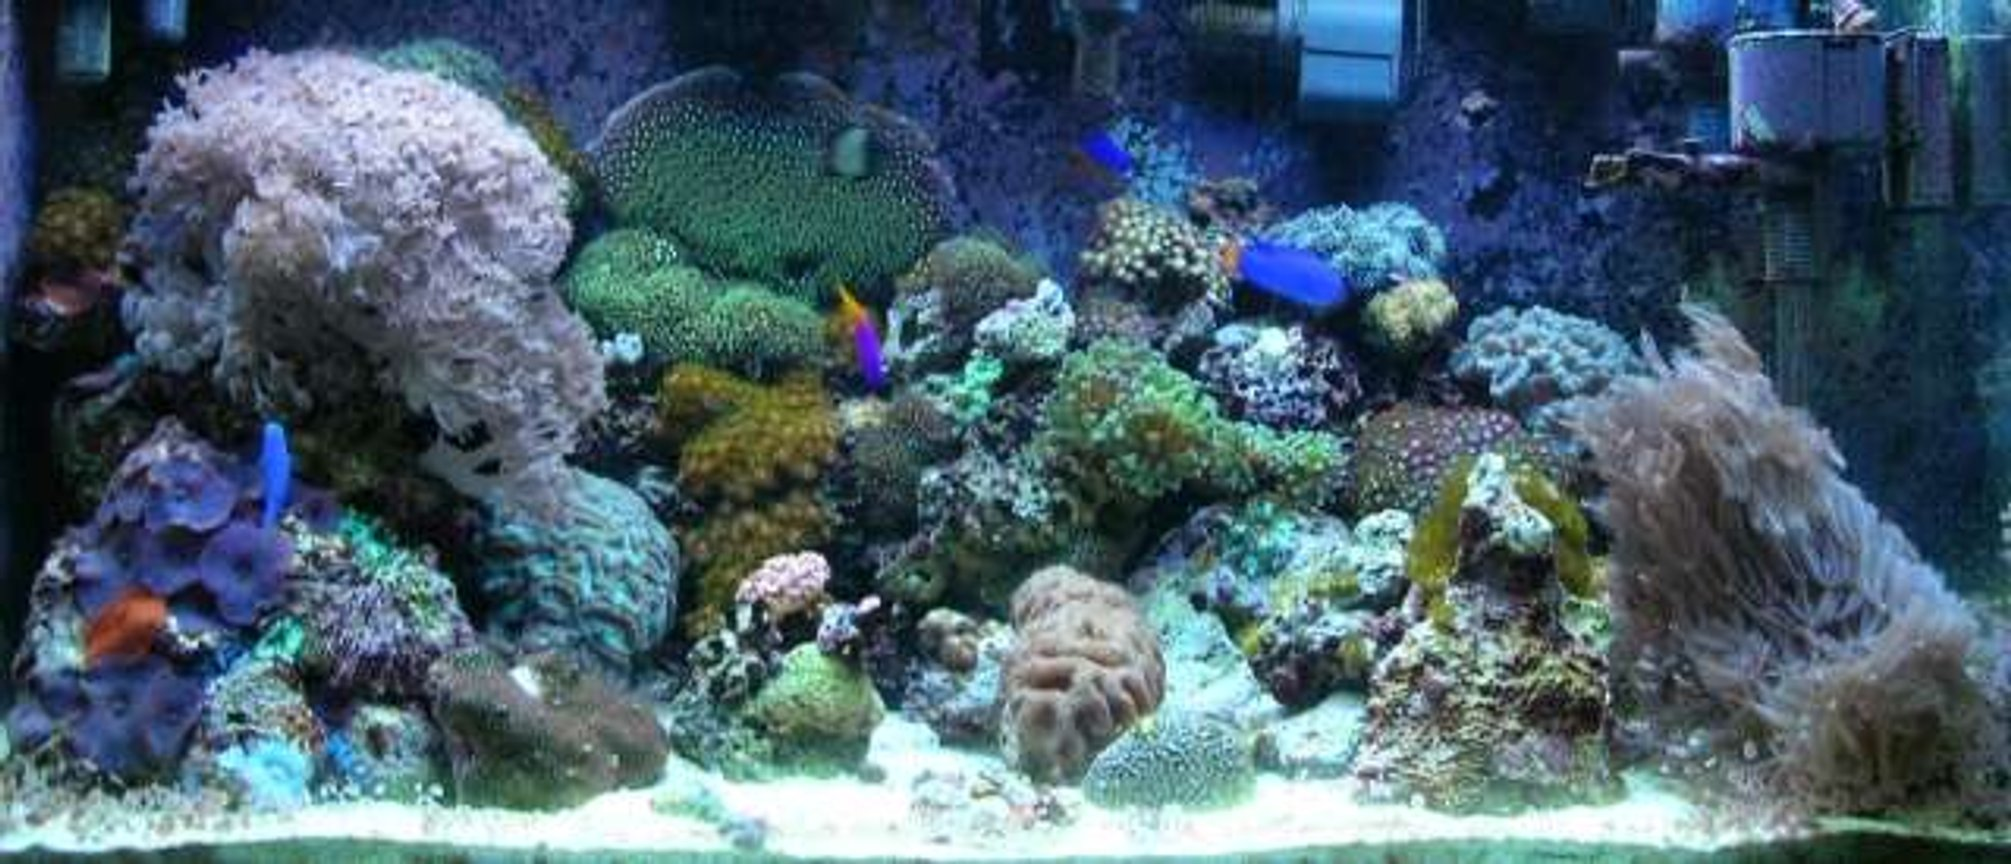 180 gallons reef tank (mostly live coral and fish) - 65gal Reef Tank (LPS, soft corals, several damsels and a royal gramma. Equipment (288watts PC; AquaC protein skimmer, AquaFuge HOB refugium, Phosban Reactor, circulation ~25x, sumpless set up)